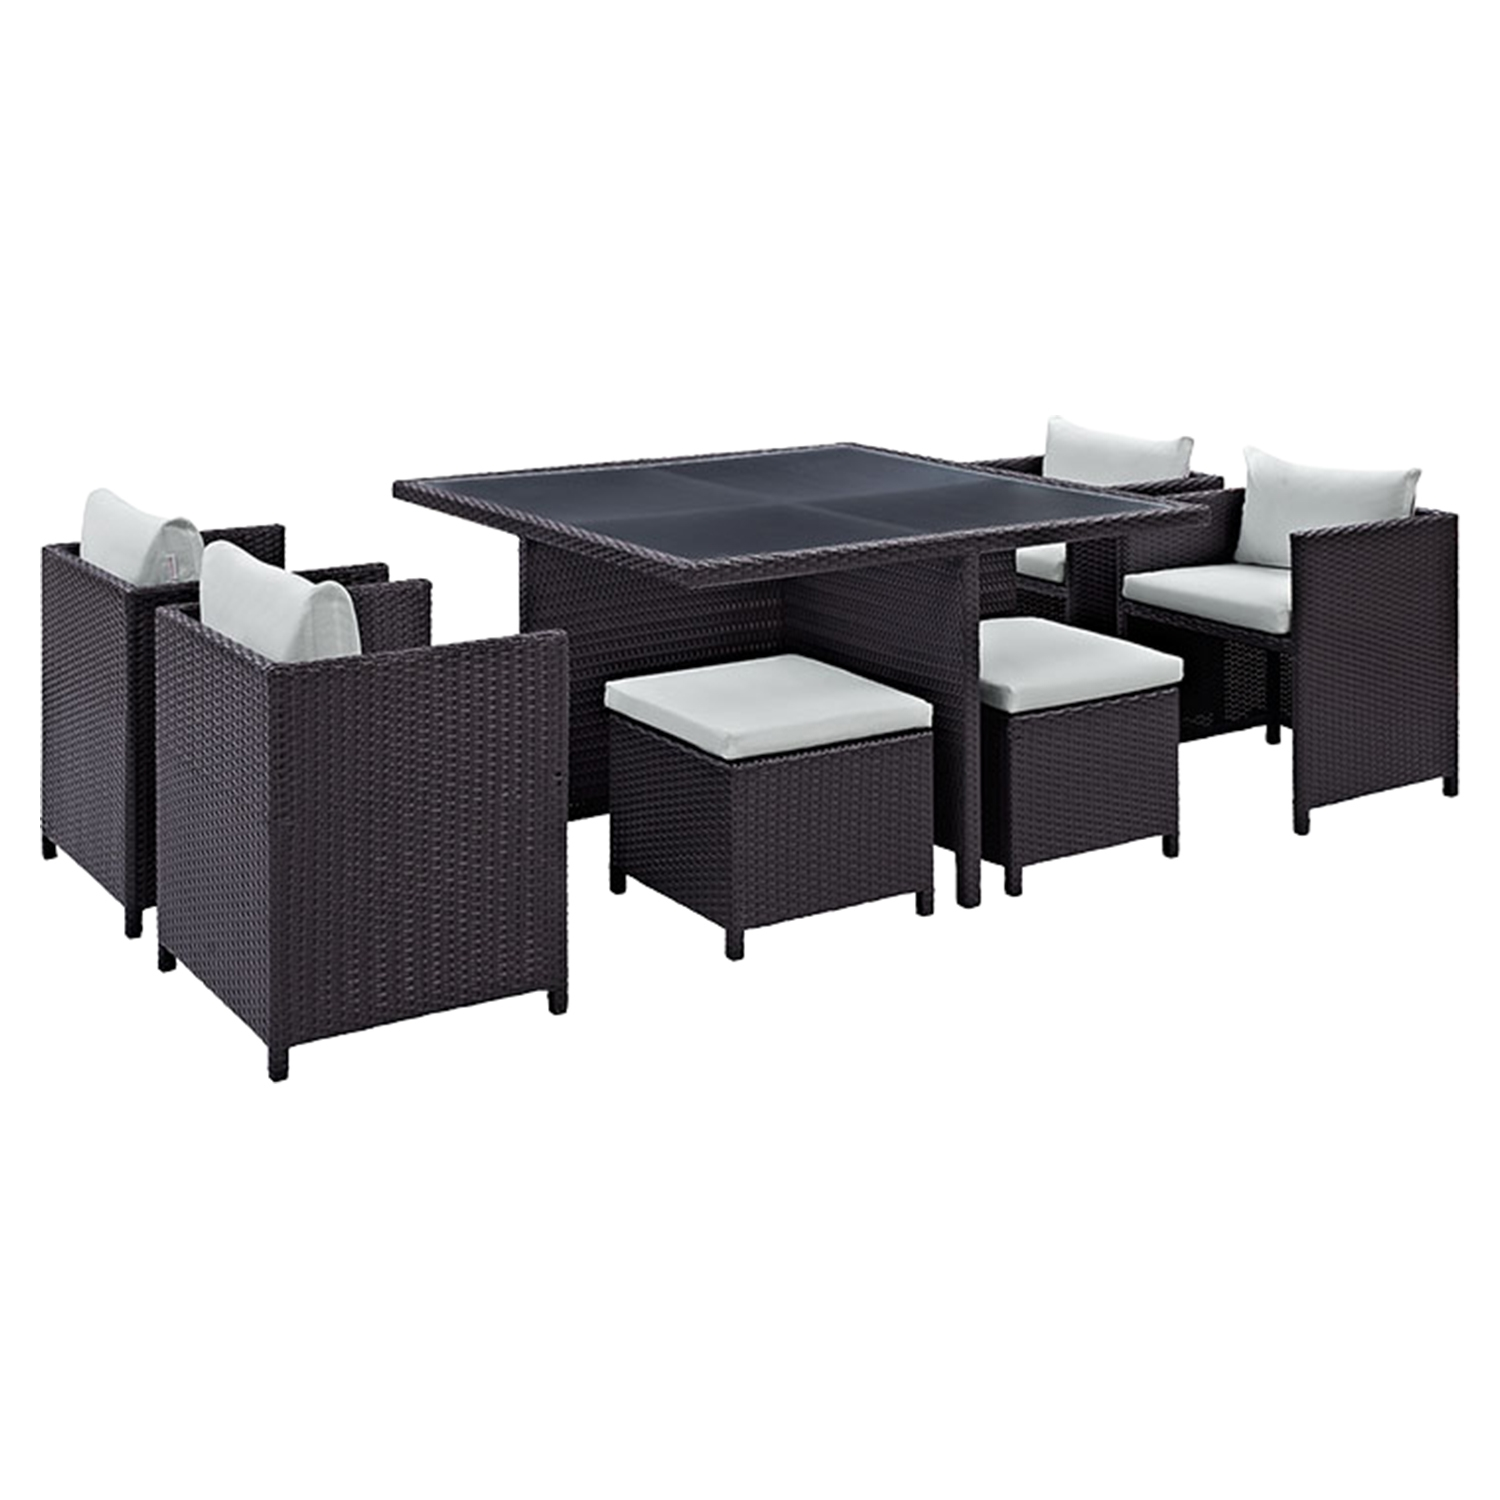 Inverse 9 Pieces Outdoor Patio Dining Set - EEI-726-EXP